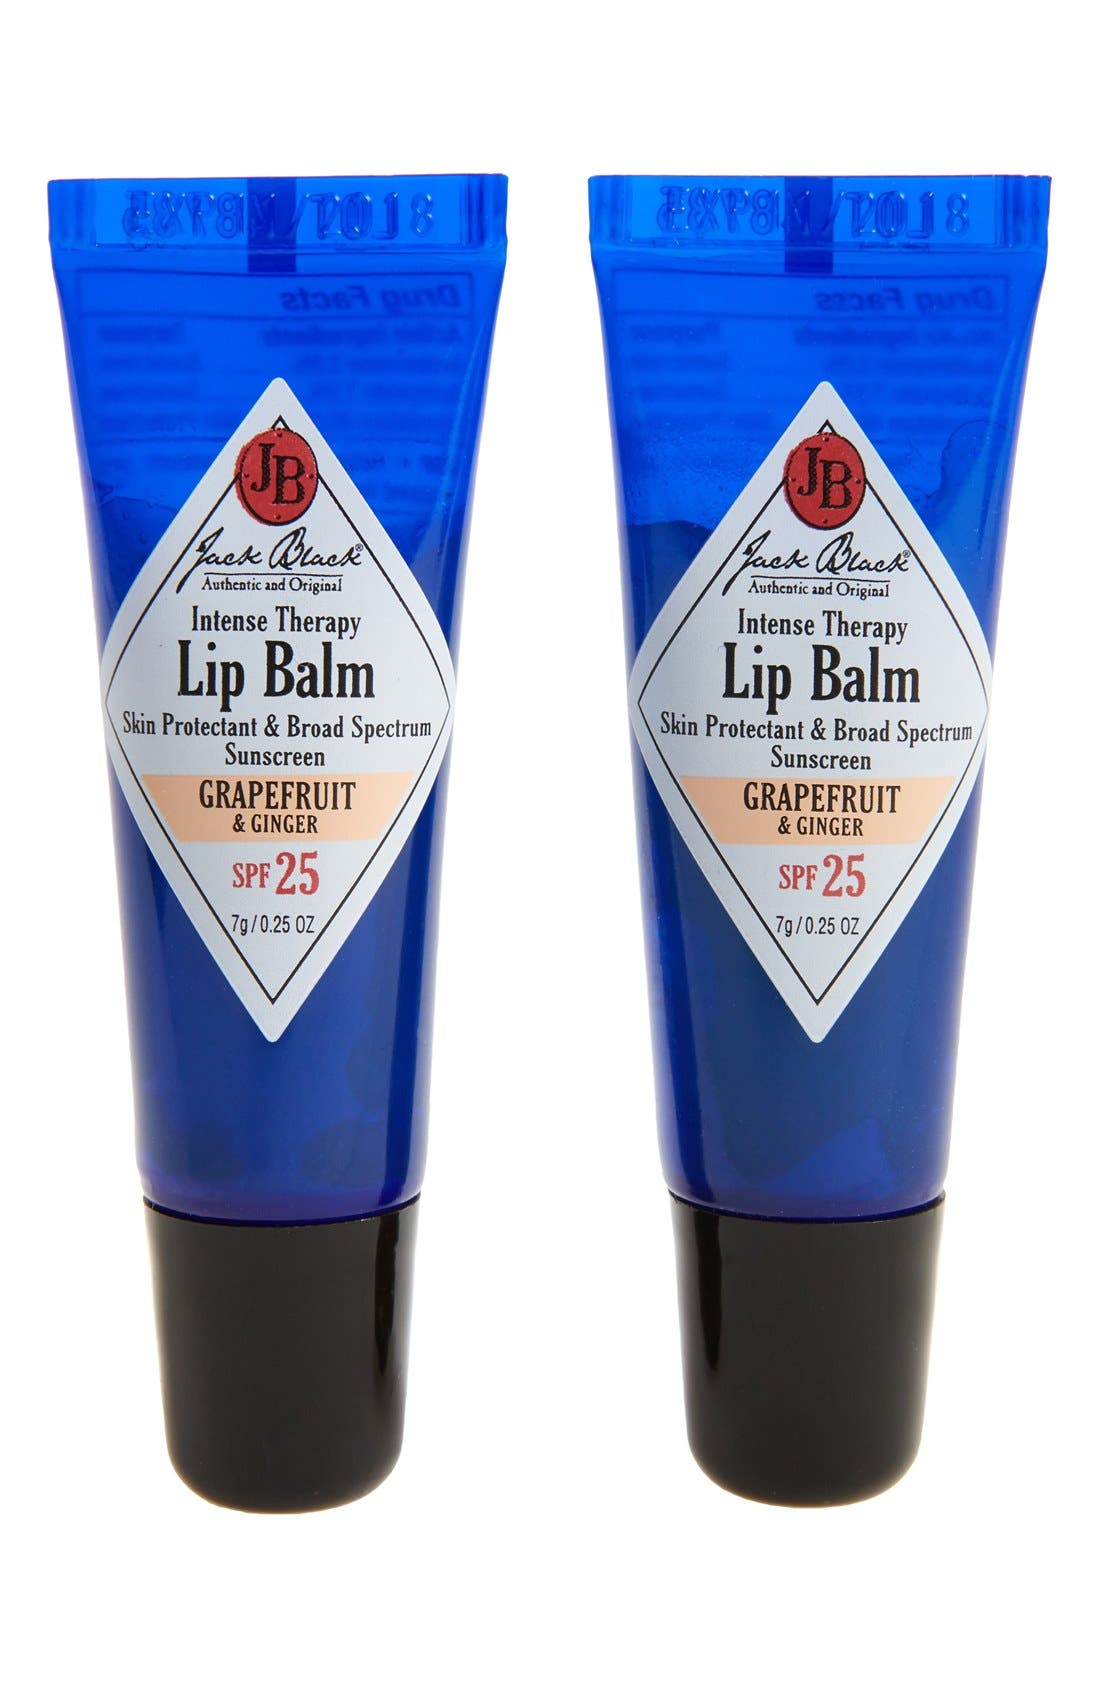 Intense Therapy Lip Balm SPF 25 Duo | Nordstrom